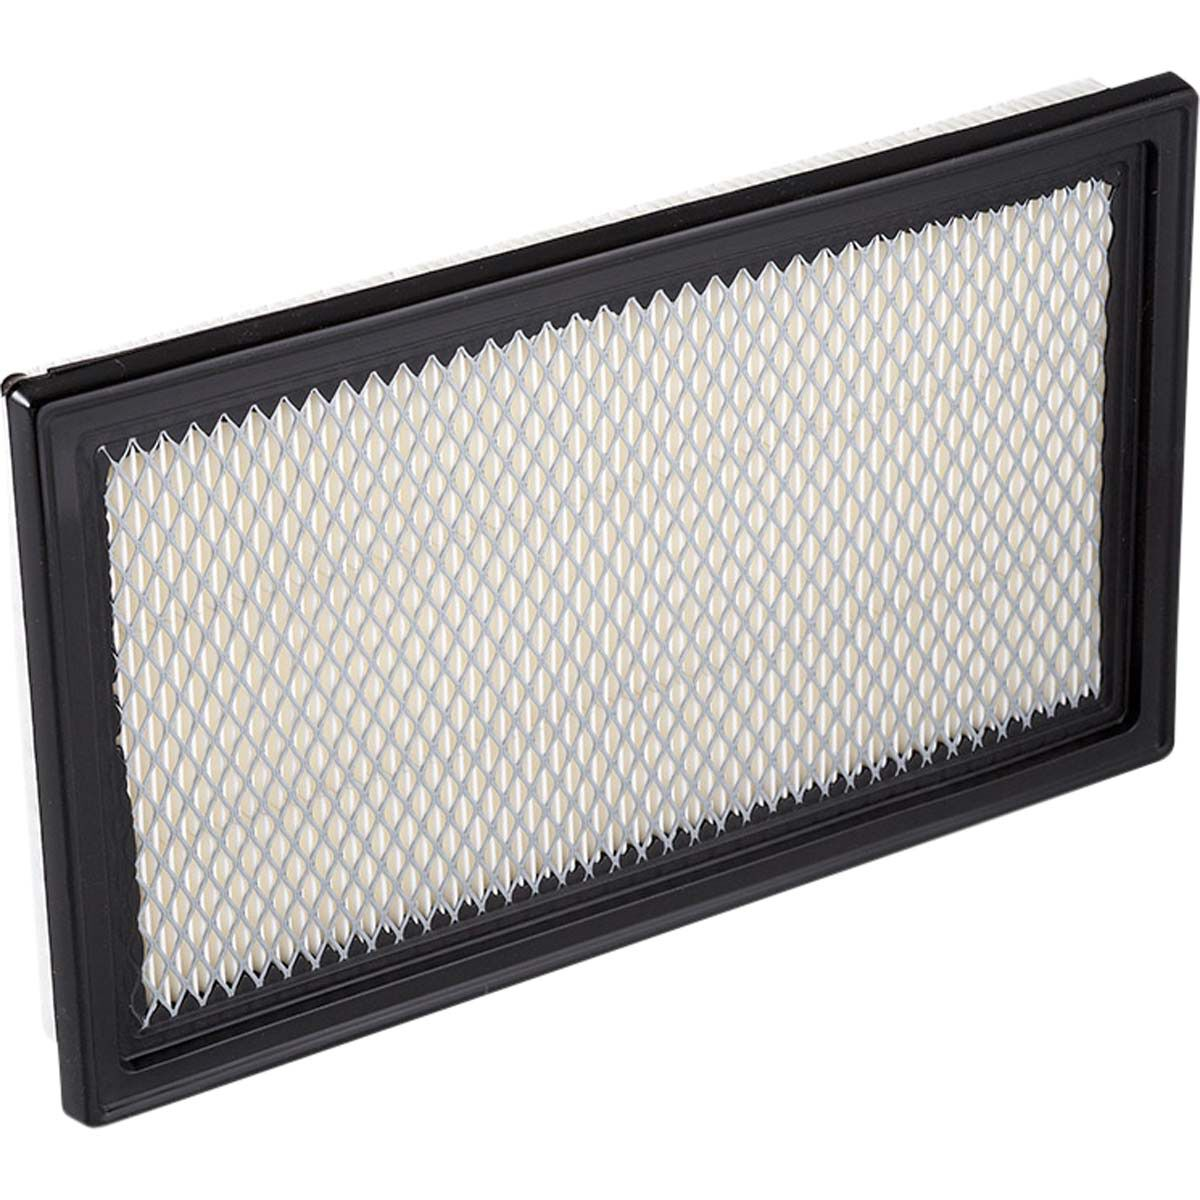 K/&N Panel Air Filter ref Ryco A1838 33-2457 FOR JEEP GRAND CHEROKEE WK2